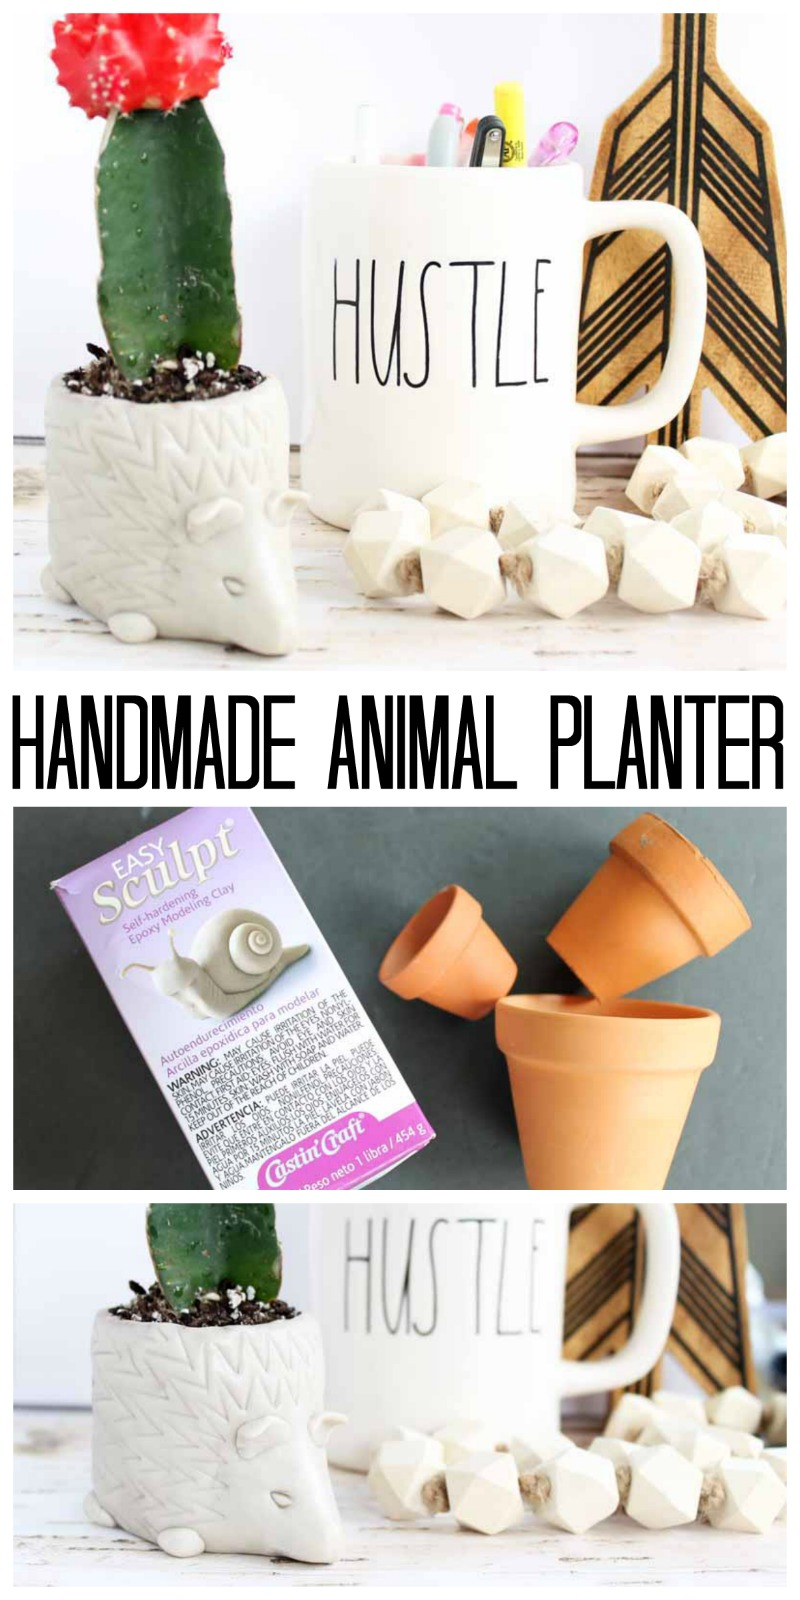 Make this handmade animal planter as a hedgehog or any other shape!